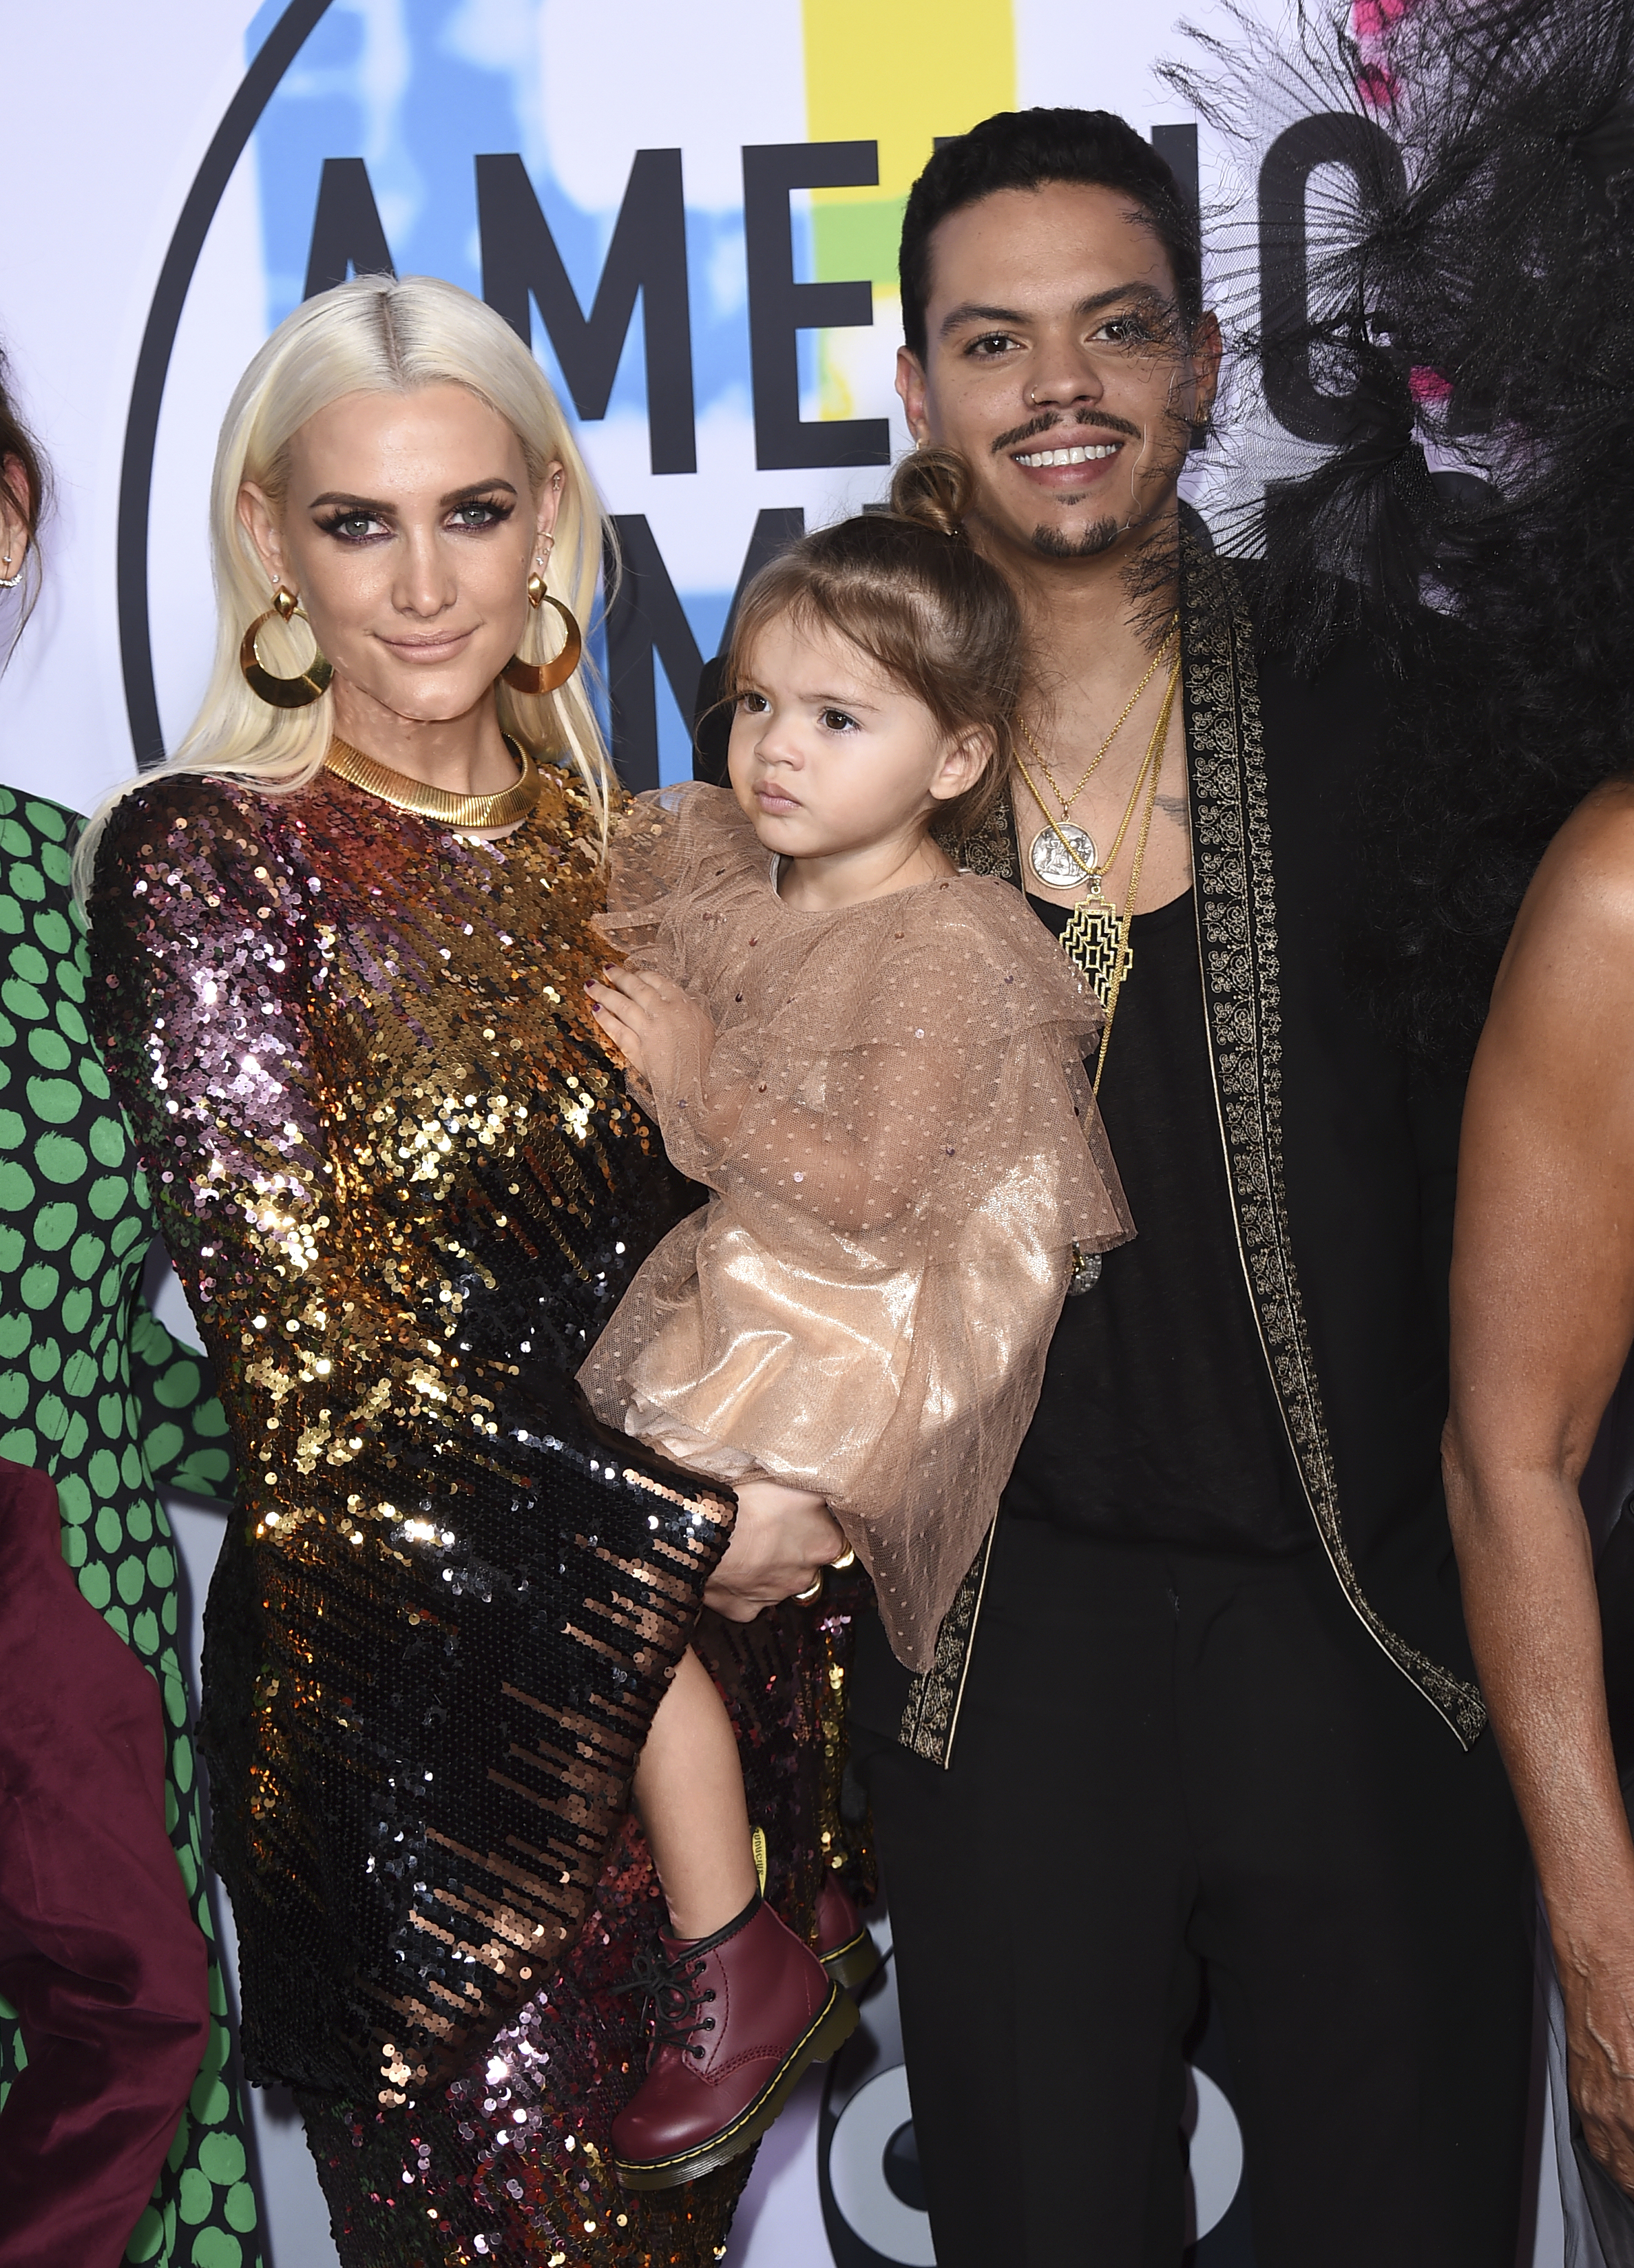 <div class='meta'><div class='origin-logo' data-origin='none'></div><span class='caption-text' data-credit='Jordan Strauss/Invision/AP'>Ashlee Simpson, from left, Jagger Snow Ross, and Evan Ross arrive at the American Music Awards at the Microsoft Theater on Sunday, Nov. 19, 2017, in Los Angeles.</span></div>